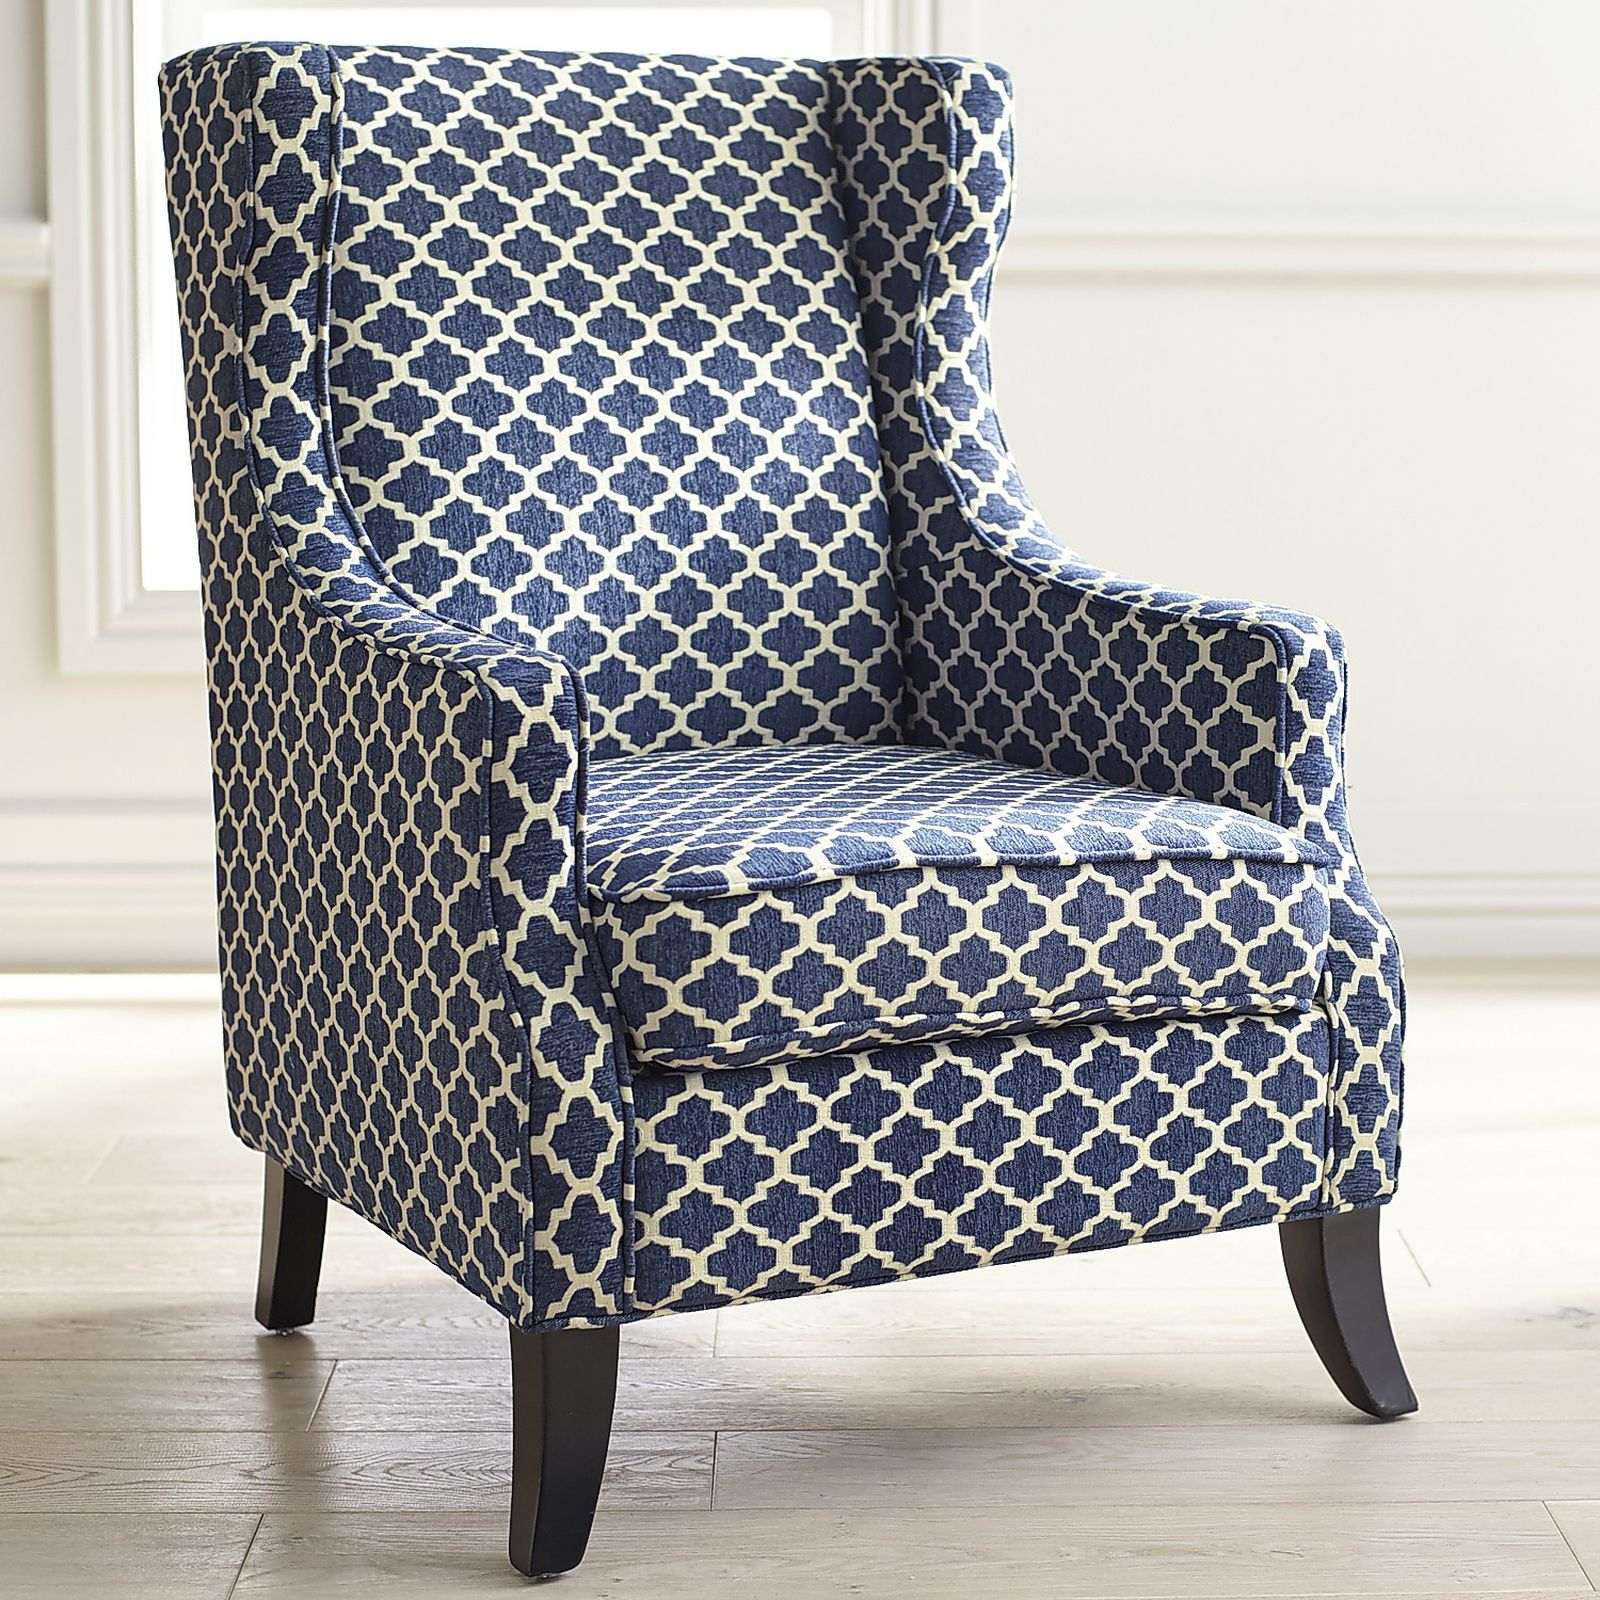 Enjoyable Navy Blue Accent Chair